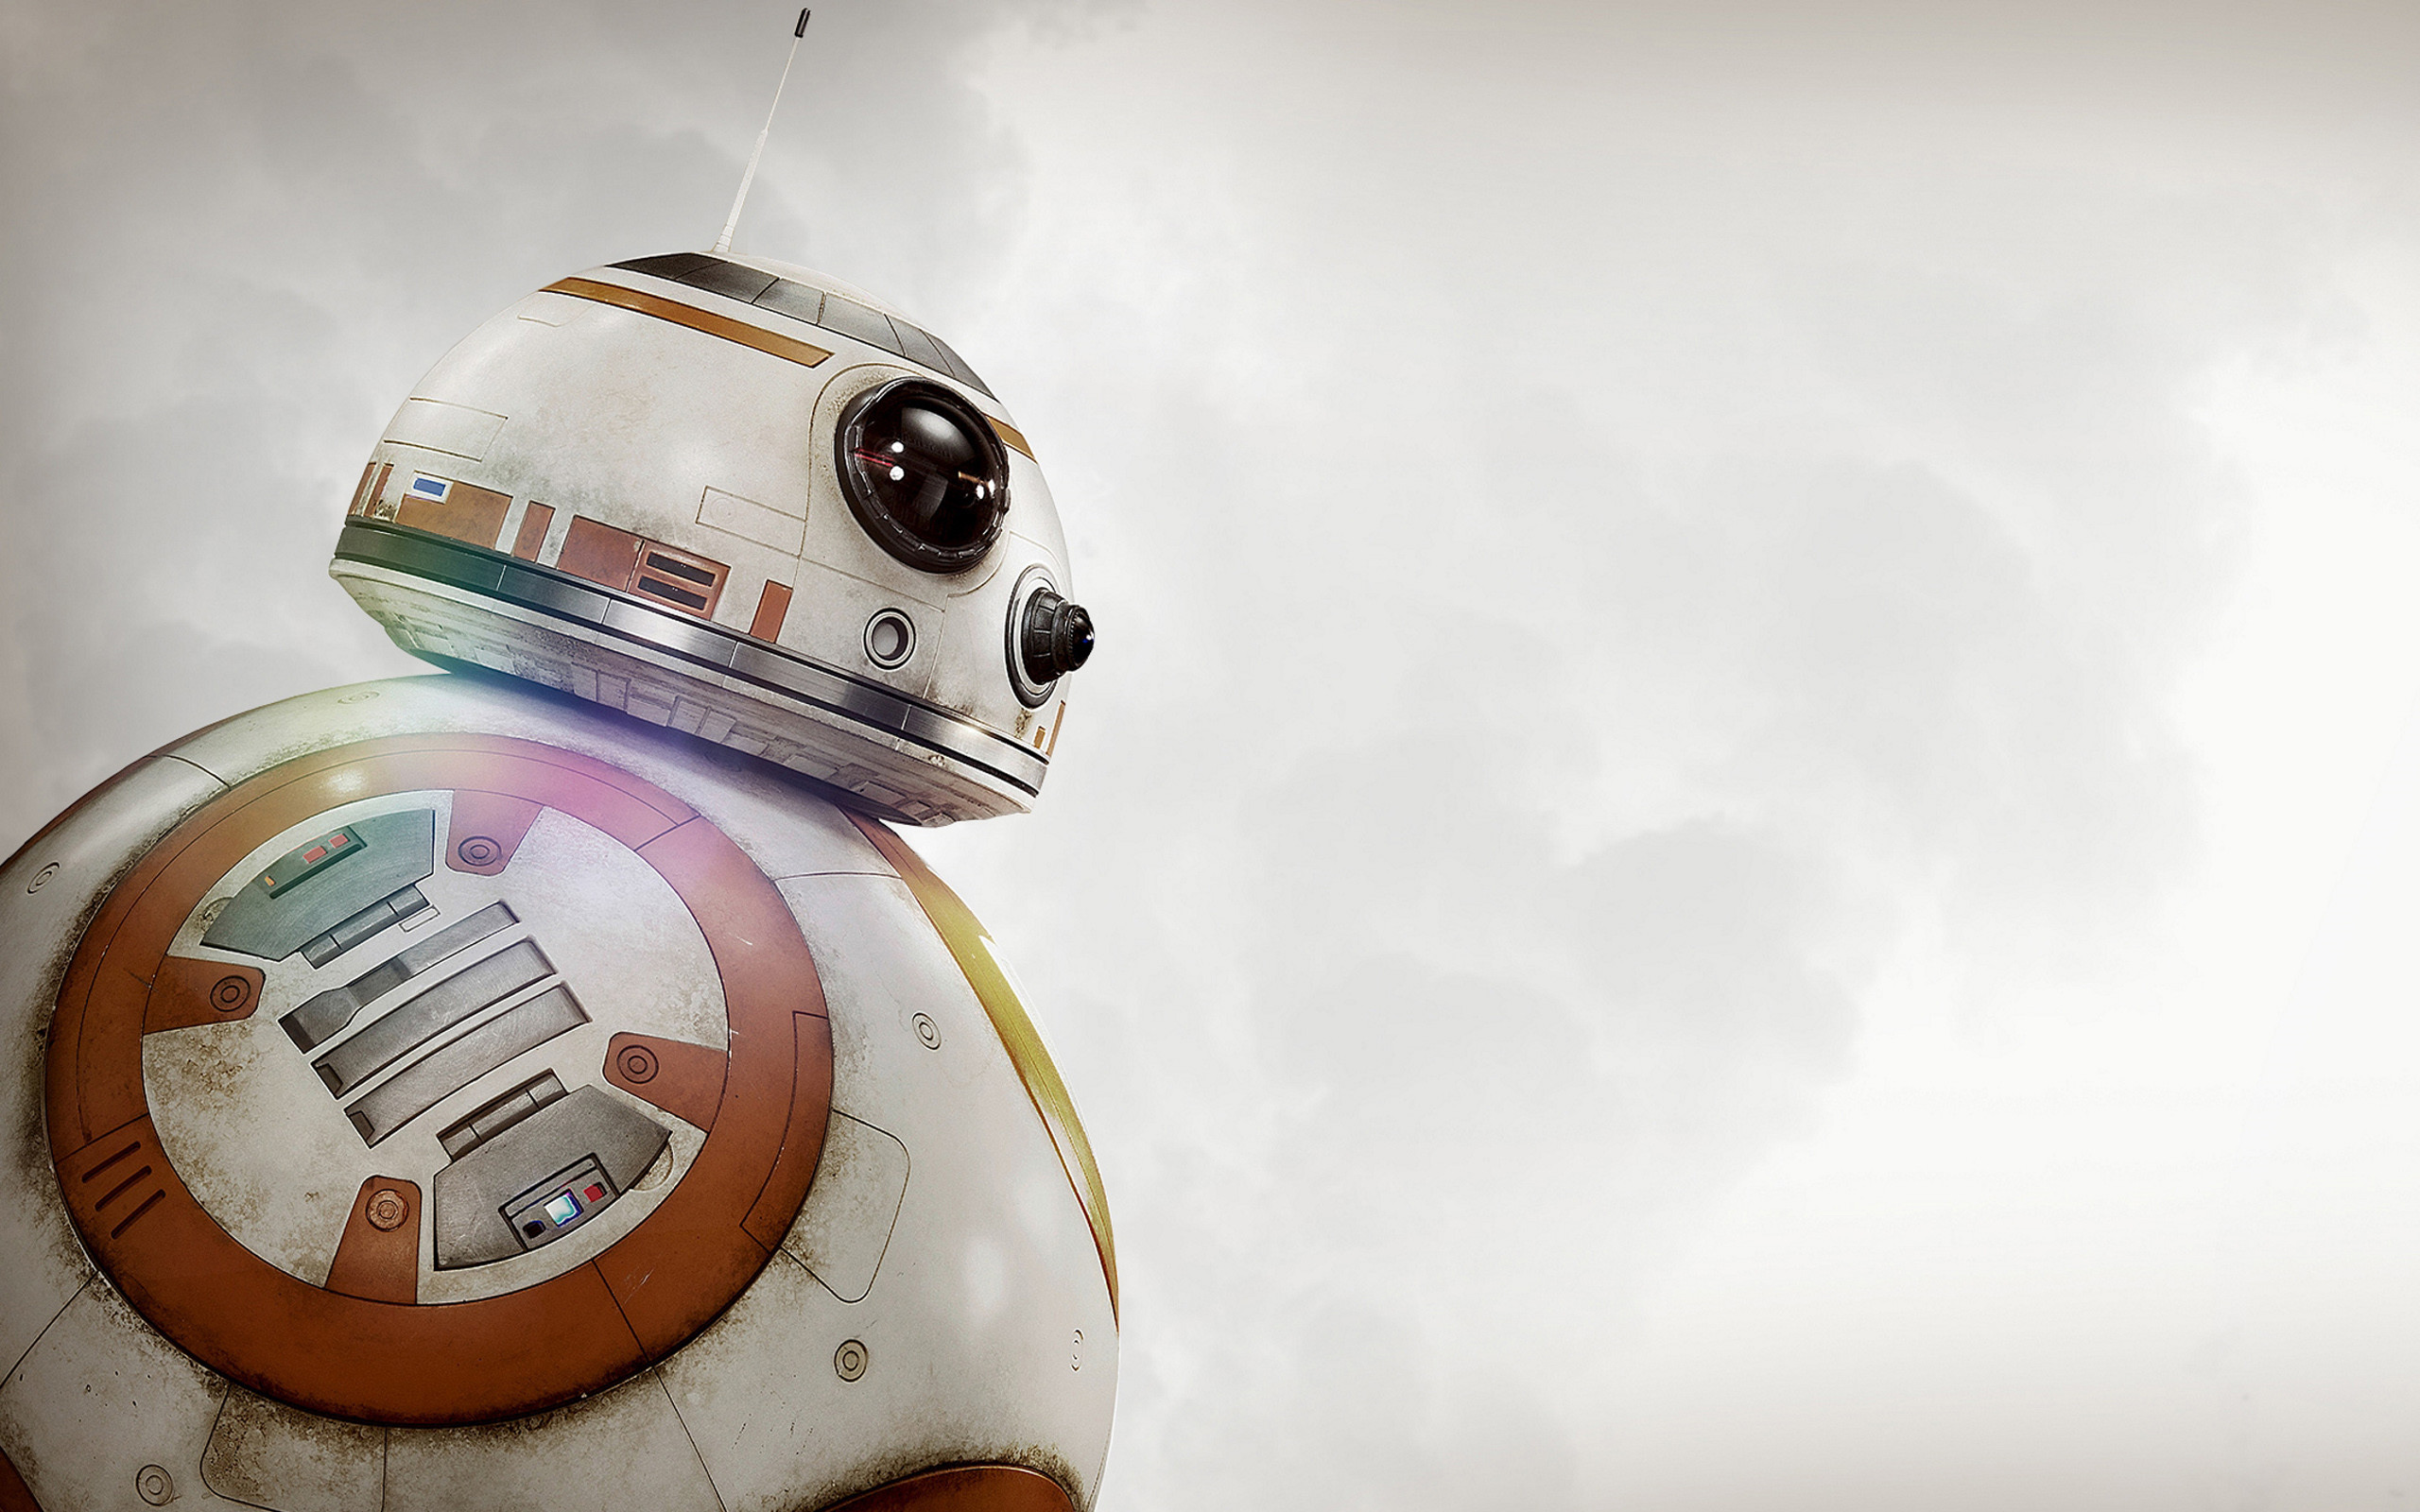 Star Wars Bb8 Wallpaper (69+ images)